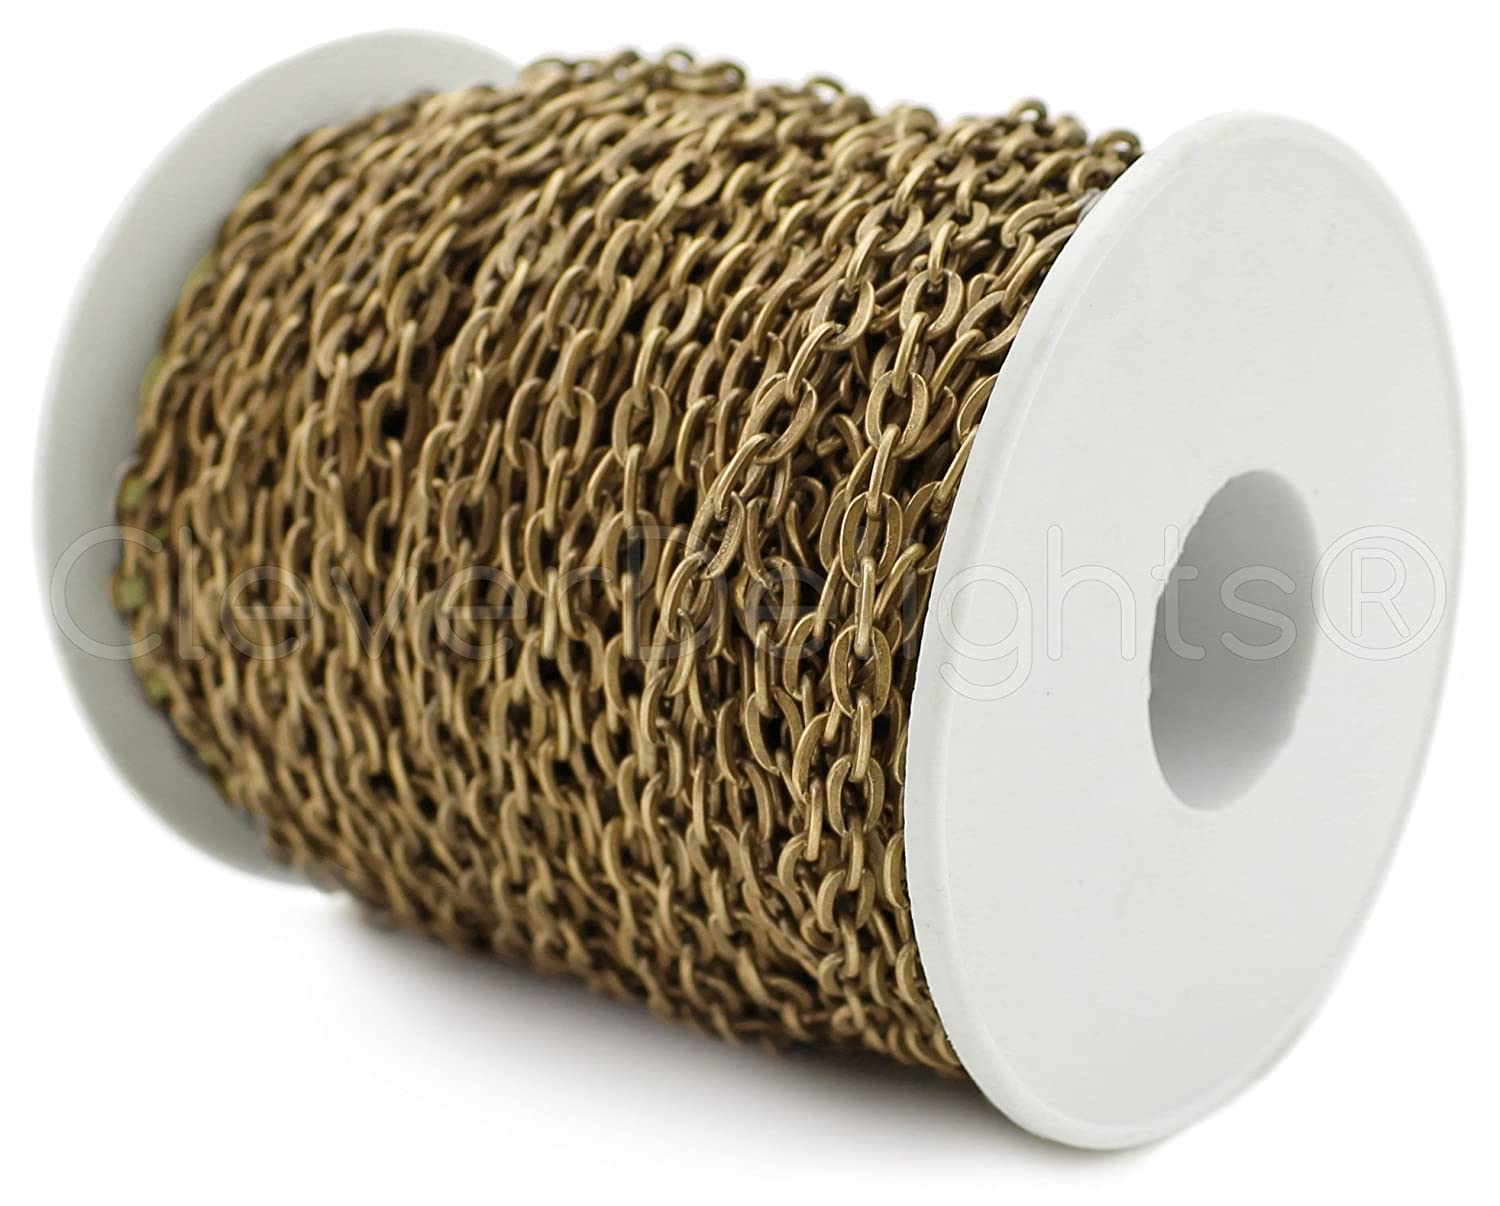 CleverDelights Cable Chain Spool - 150 Feet - Antique Bronze Color - 4x6mm Link - Rolo Chain Bulk Roll by CleverDelights   B017Y5MQ6Y